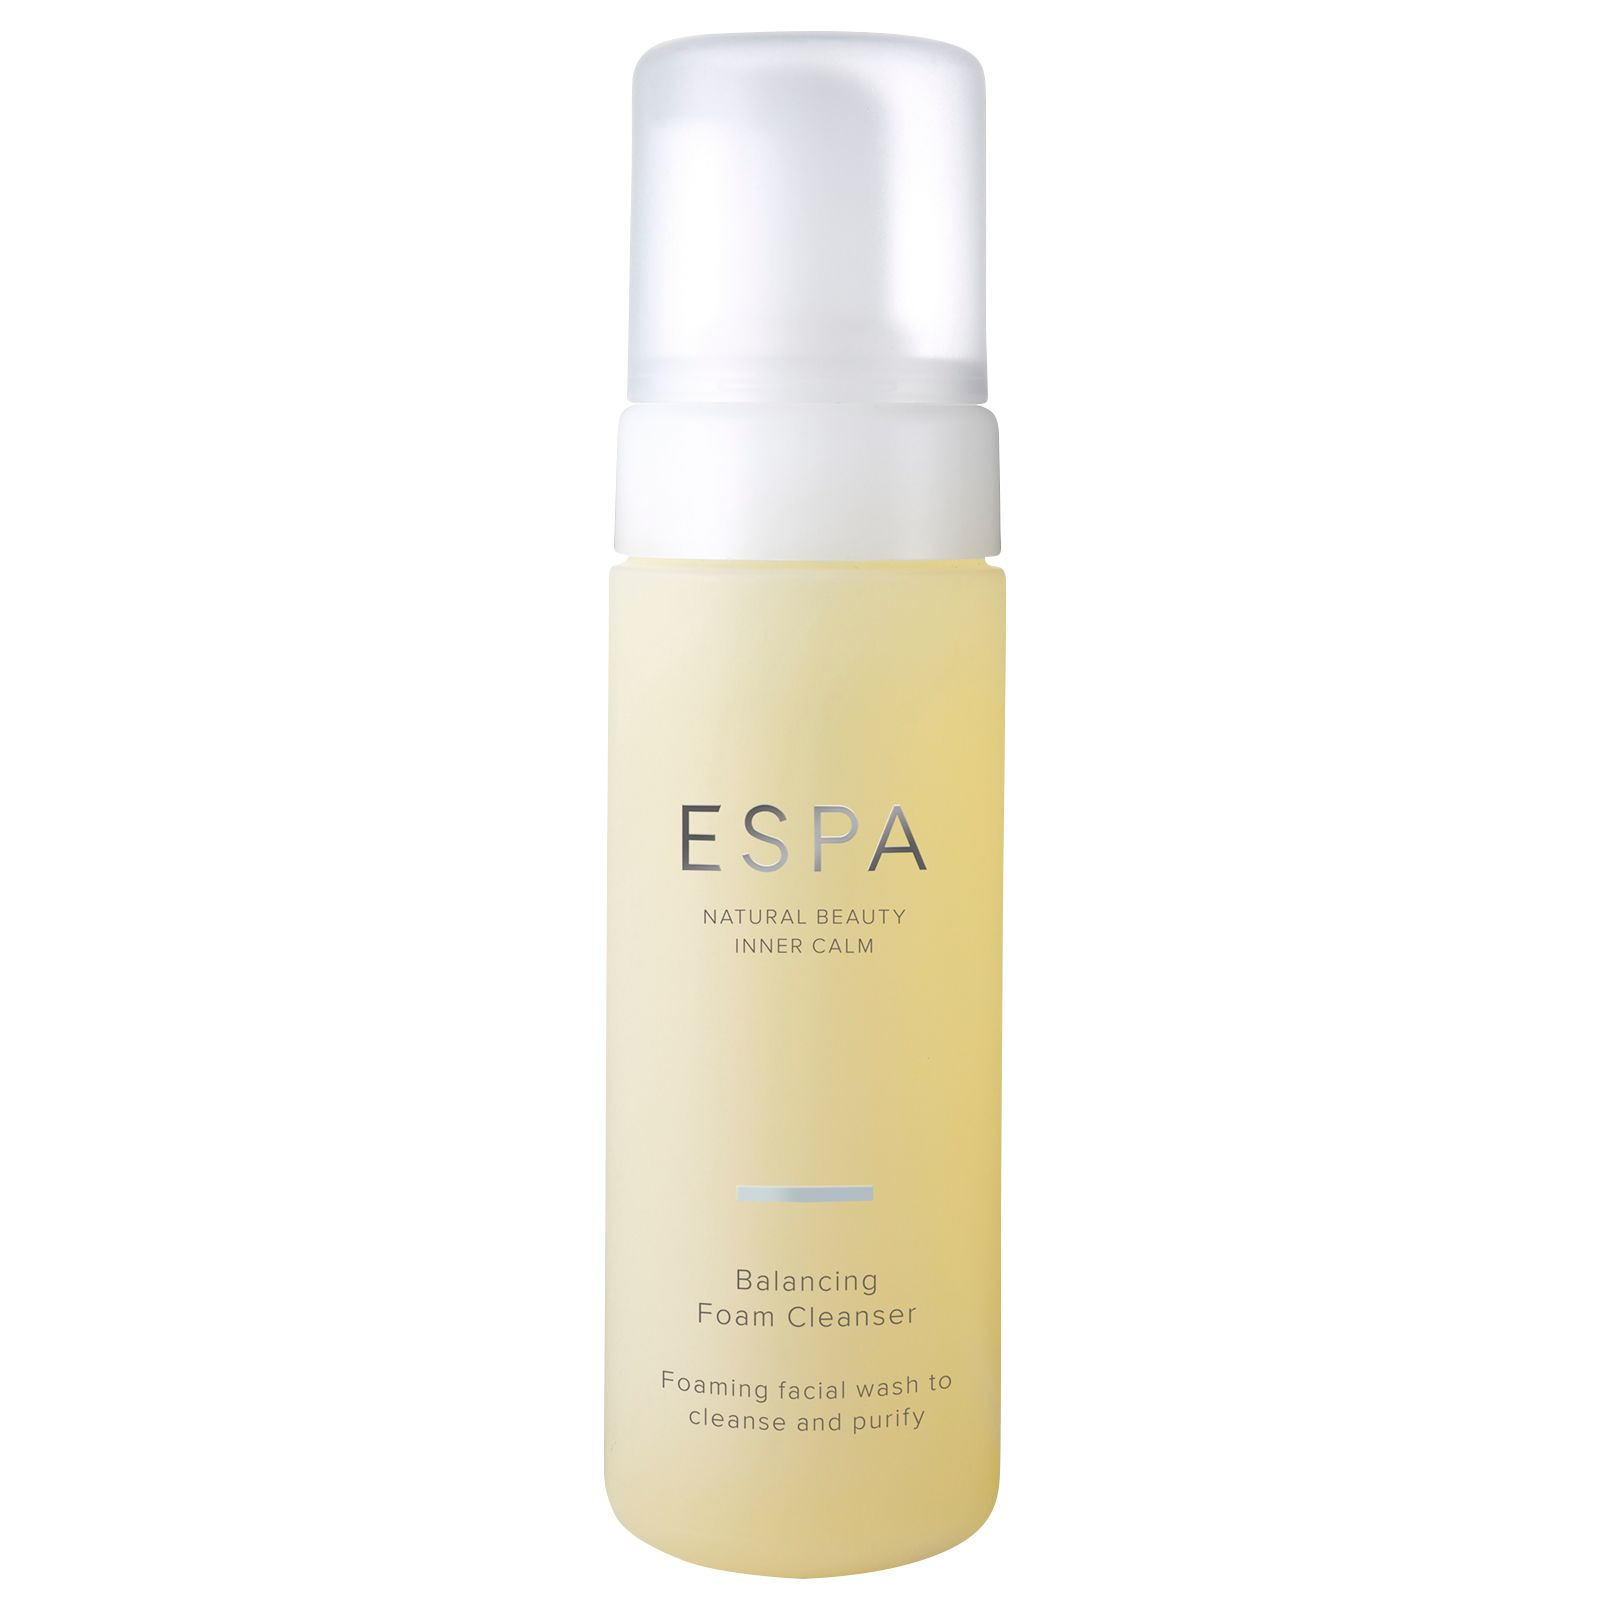 ESPA ESPA Balancing Foam Cleanser, 150ml